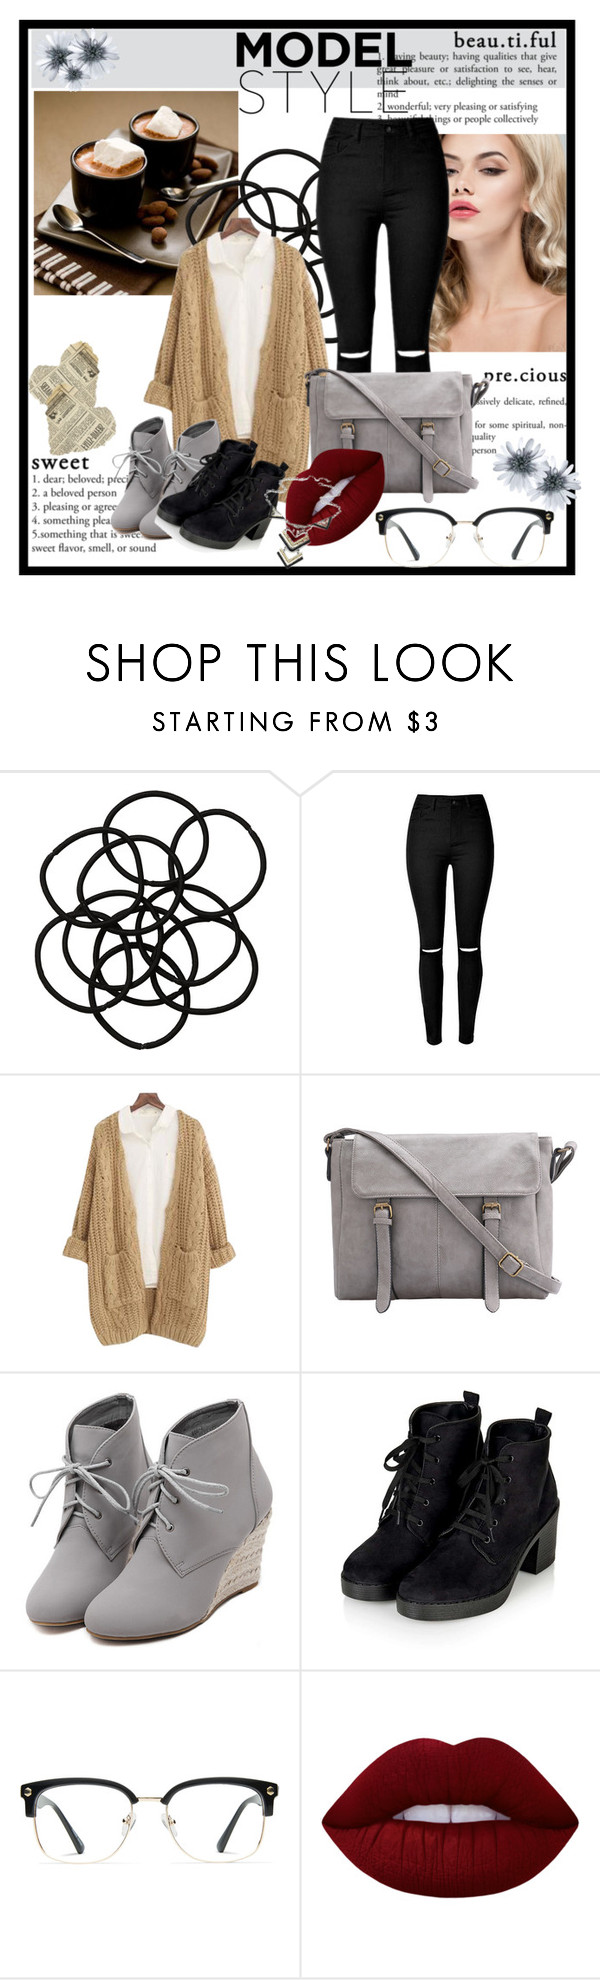 """""""- The Breakast Club -"""" by artamus on Polyvore featuring Monki, Chicnova Fashion, WithChic, Topshop, GlassesUSA and Lime Crime"""